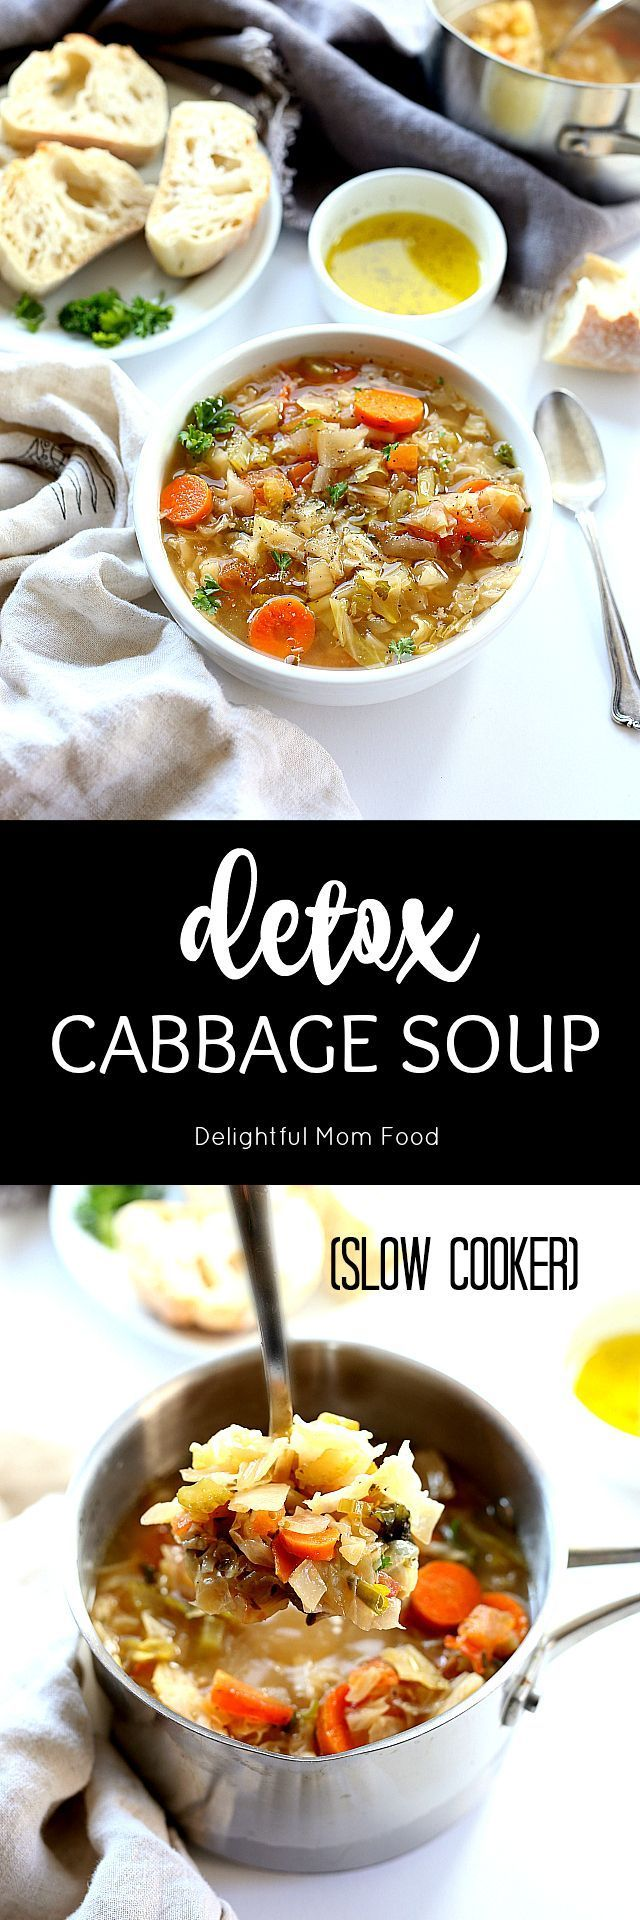 Hearty cabbage soup diet recipe slowly cooked in the slow cooker. Also known as the popular Dolly Parton Diet or T.W.A. Stewardess Diet. Whatever diet, this soup is satisfying and delicious! Packed with colorful vegetables, leafy green vegetables, broth and miso soup flavoring.